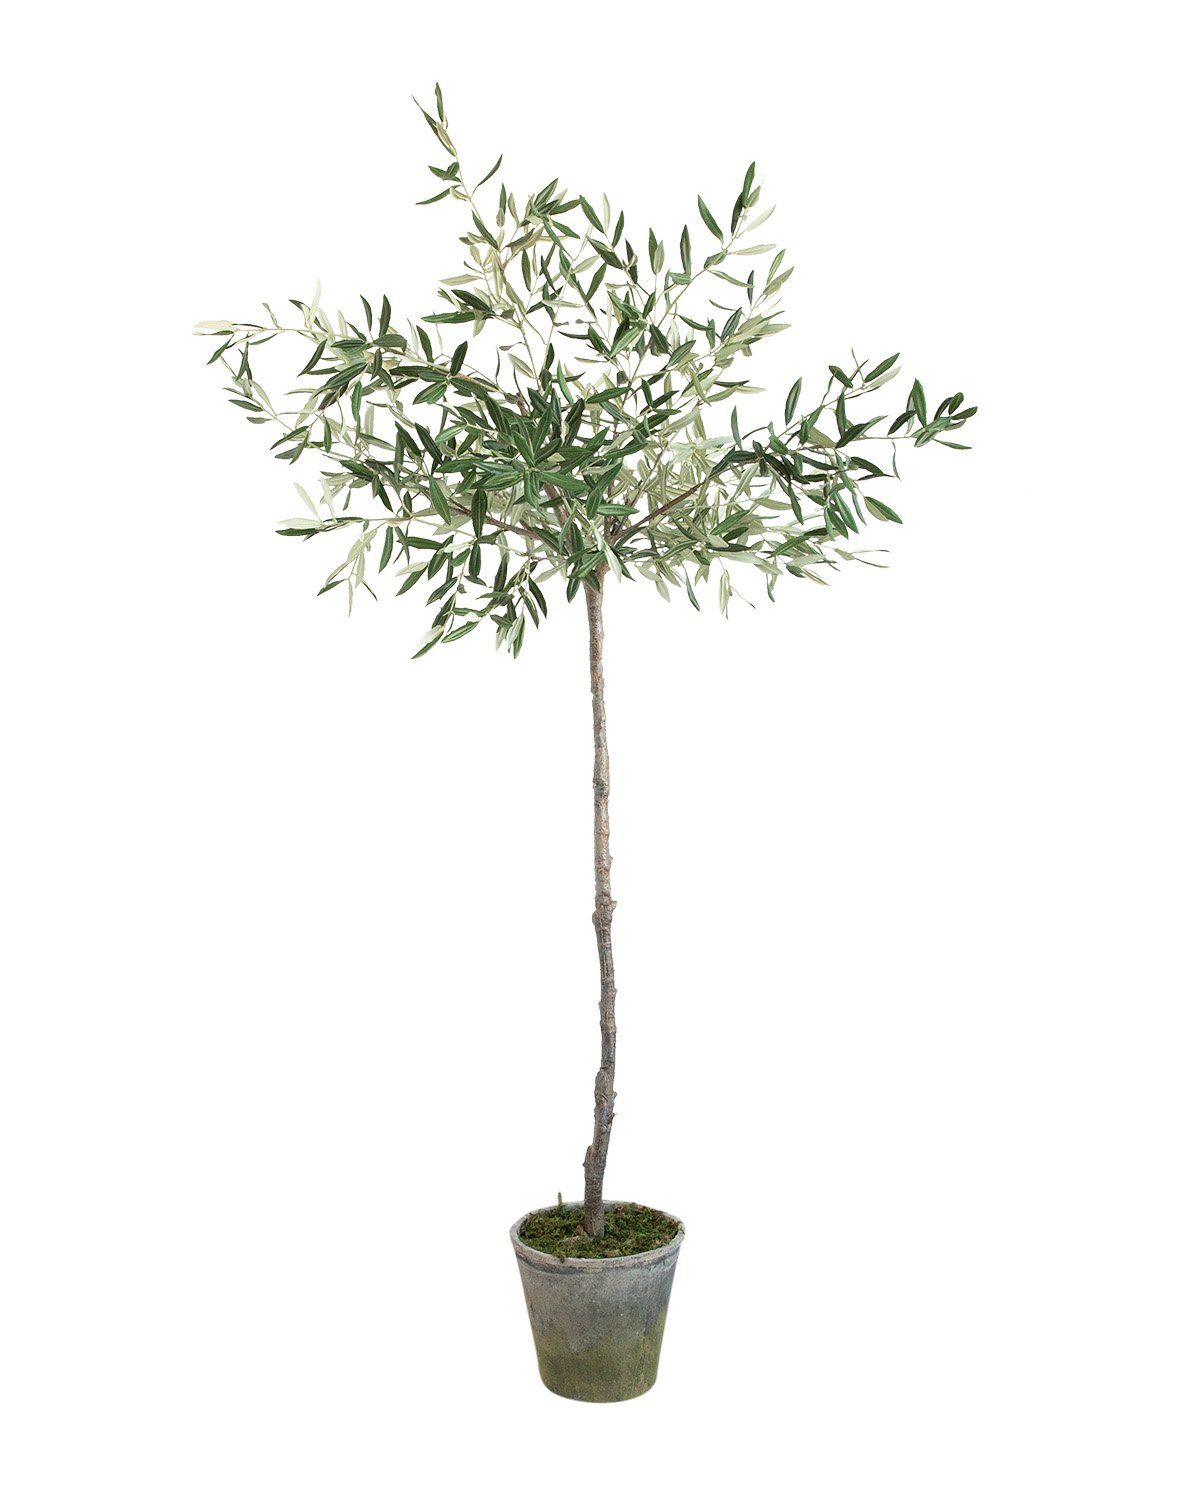 Faux_Potted_Olive_Tree_2_276f0167-eda1-4973-960f-92dd6174f7ff.jpg